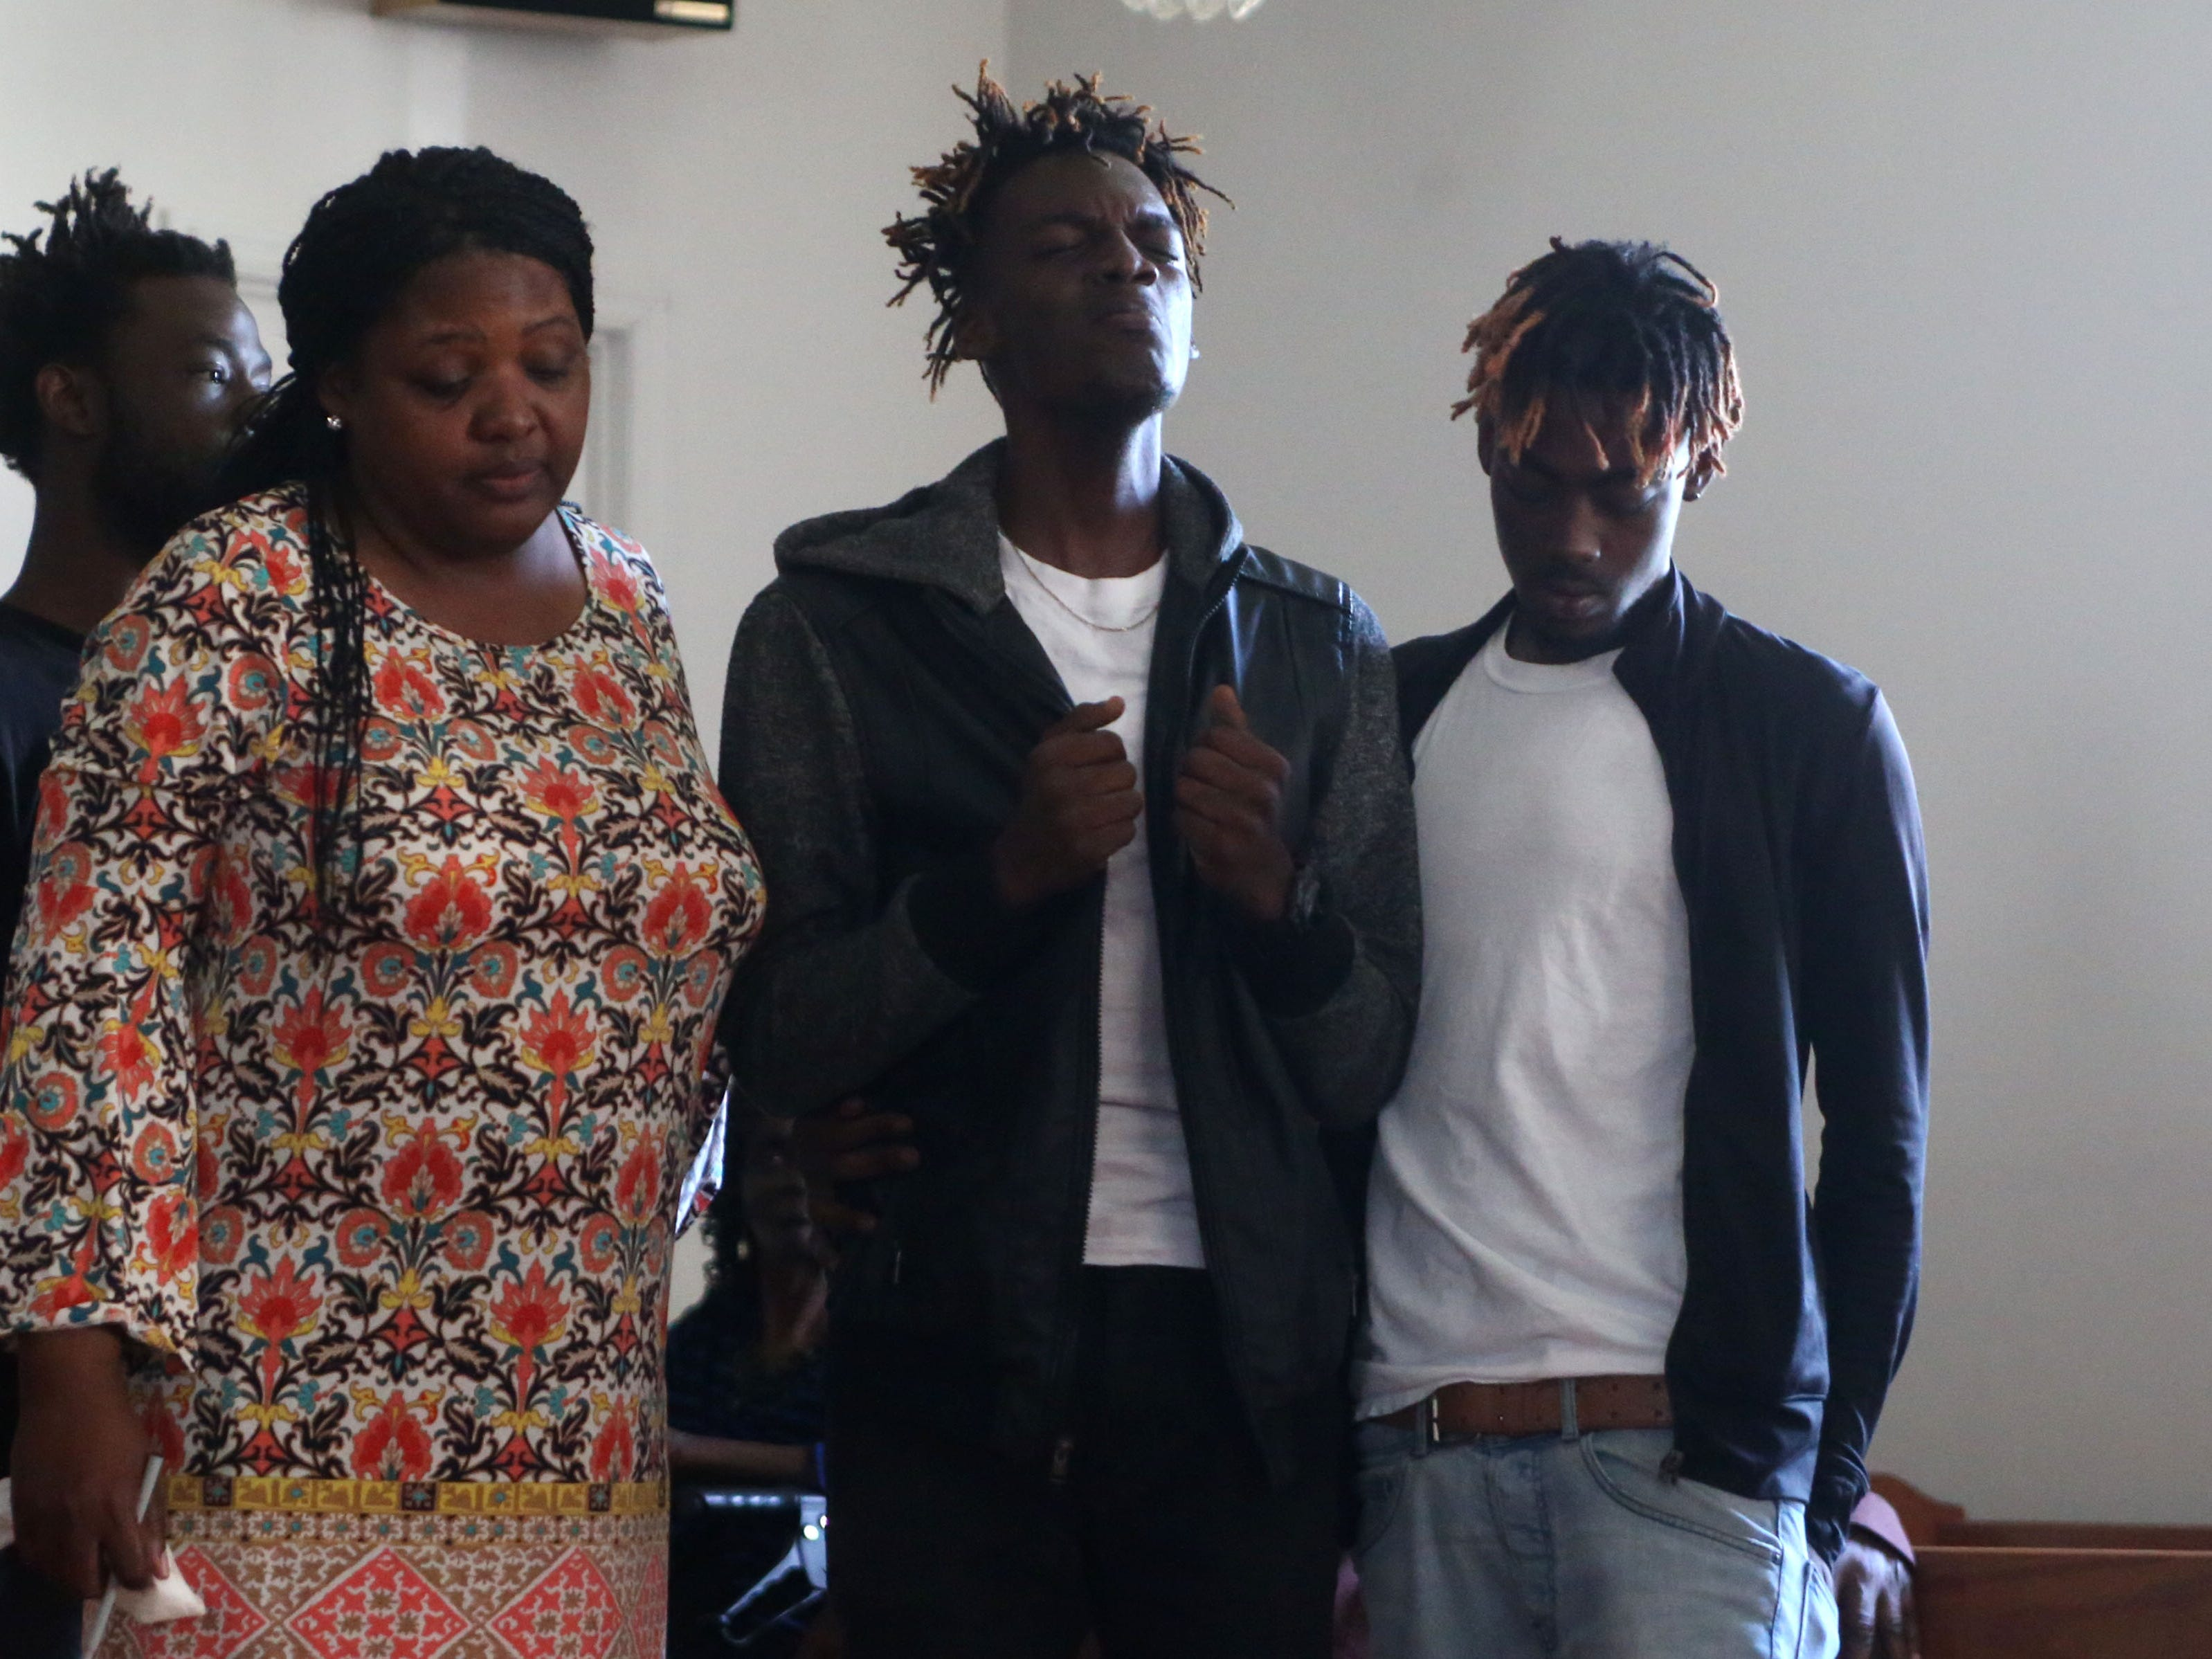 Delisha Green, left, friend, Tyrone Grant, middle and Tyran Grant, right, sons of Demashell Bass, a woman who could not receive medical attention and died during the hurricane, sing a hymn whilst trying to hold back tears at the Dream, Vision, and Destiny (DVD) Ministry in Gretna, Fla., on Sunday Oct. 14, 2018, after Hurricane Michael hits the Florida panhandle.